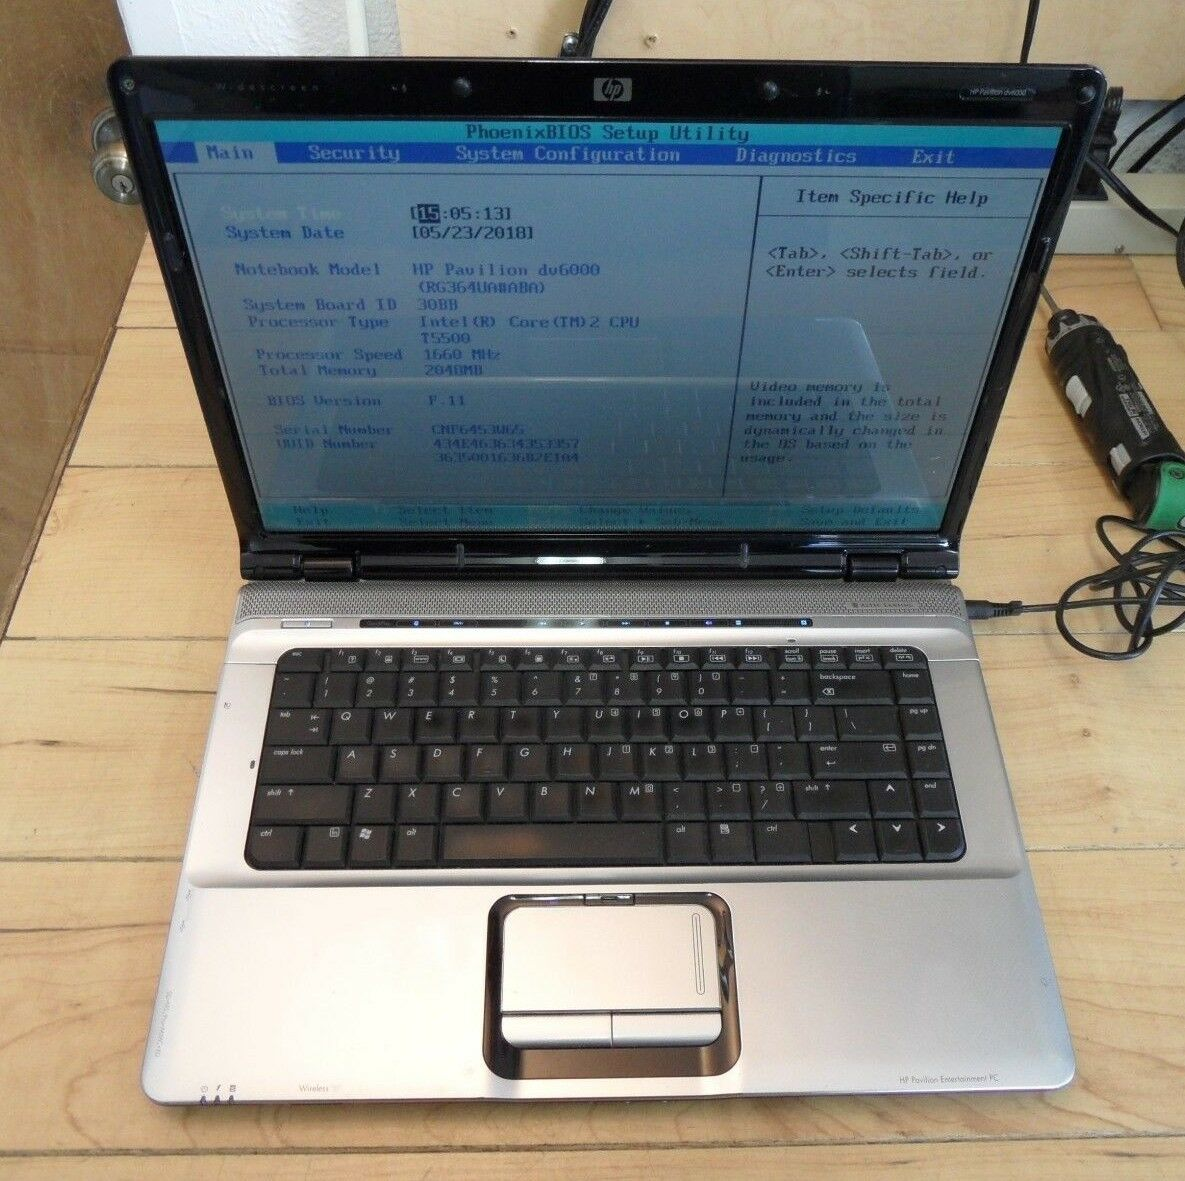 HP Pavilion dv6000 dv6135nr Parts Laptop Posted Bios No Hard Drive 434723-001 *